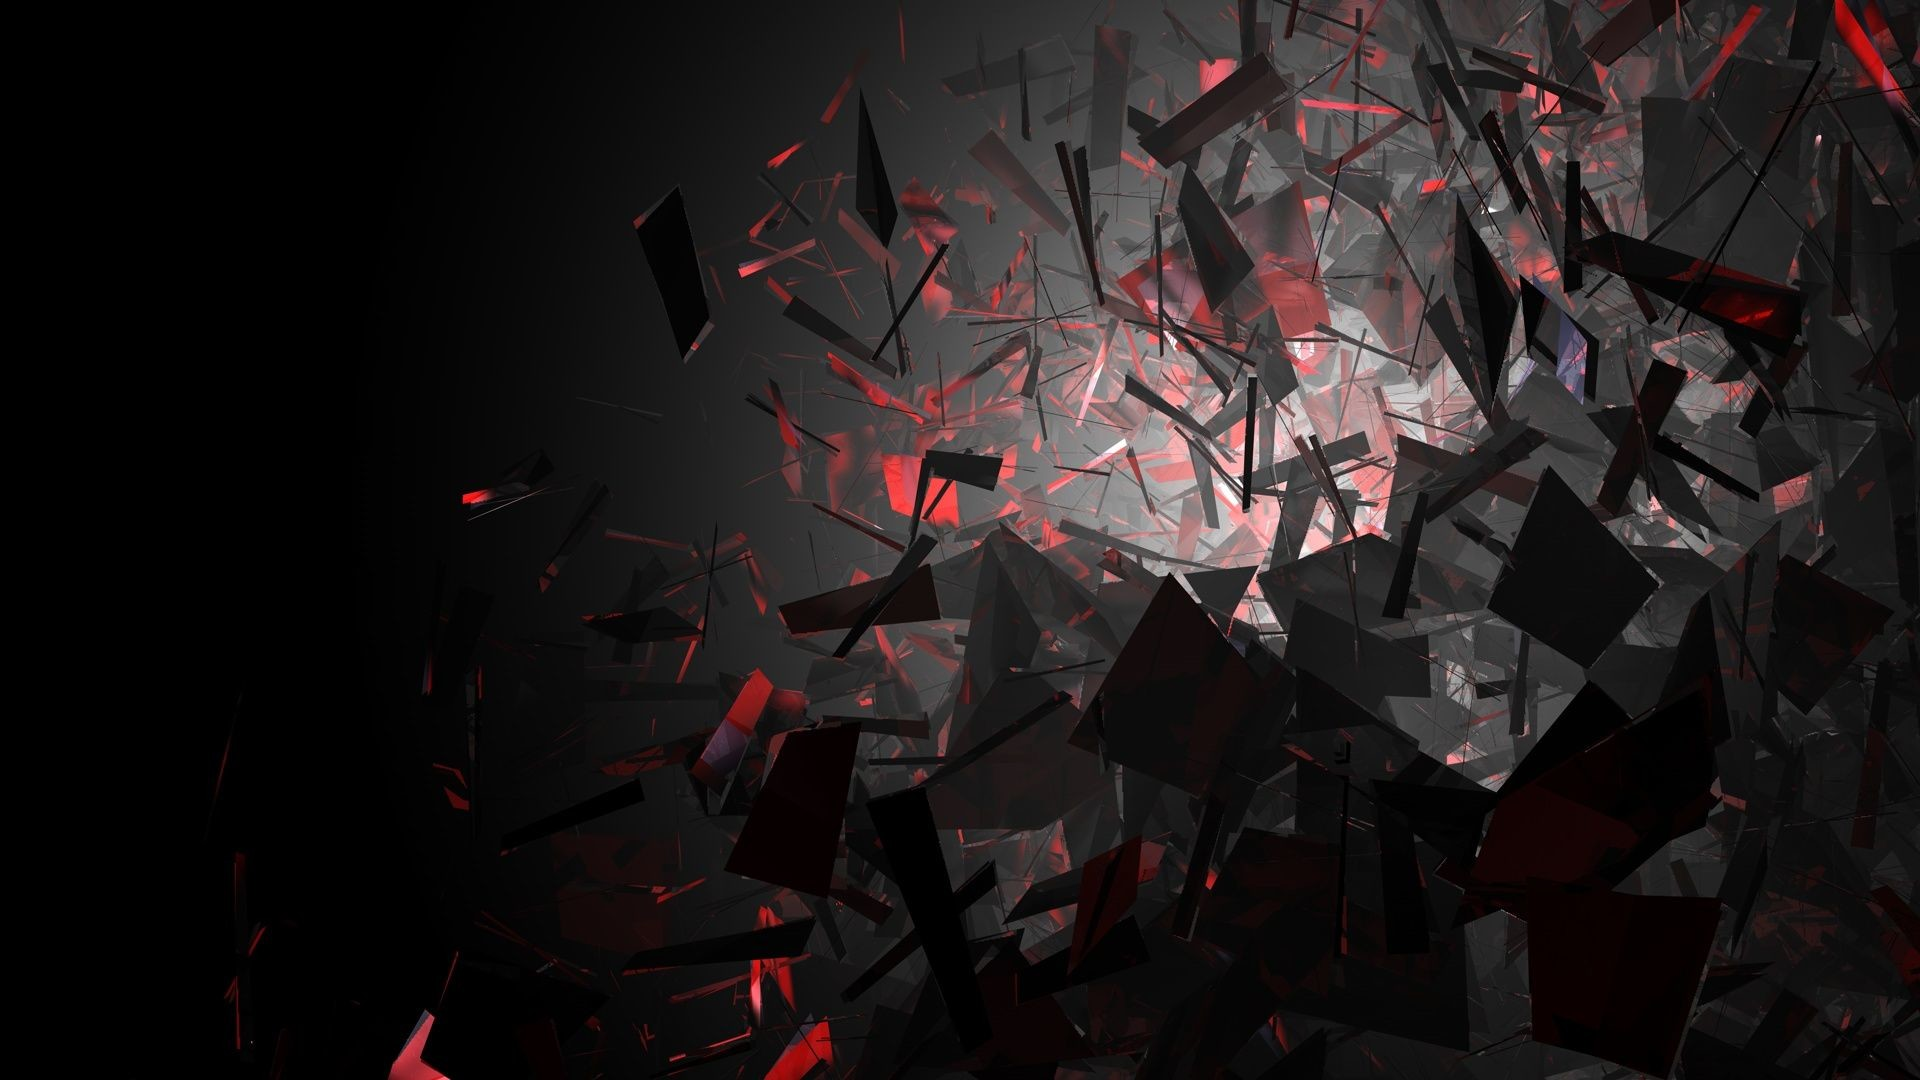 Hd Red Abstract Wallpapers 67 Images